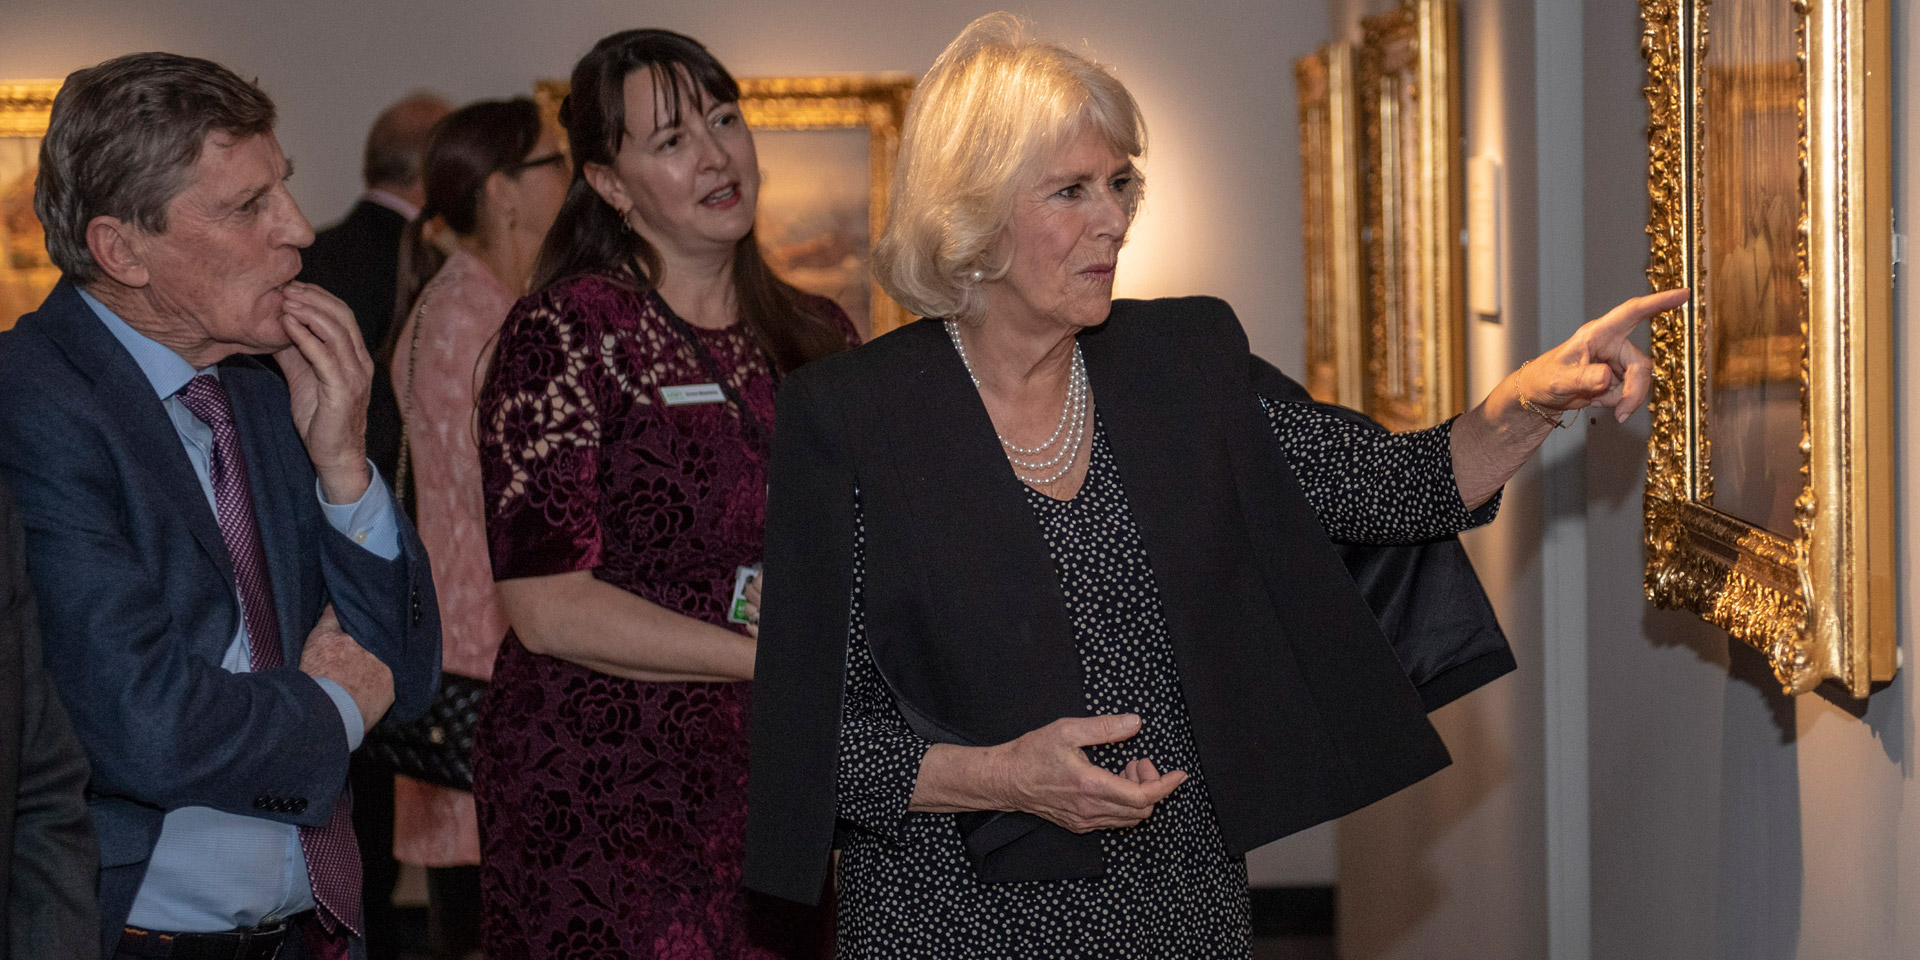 The Duchess of Cornwall visiting the Alfred Munnings exhibition at the National Army Museum, 2018